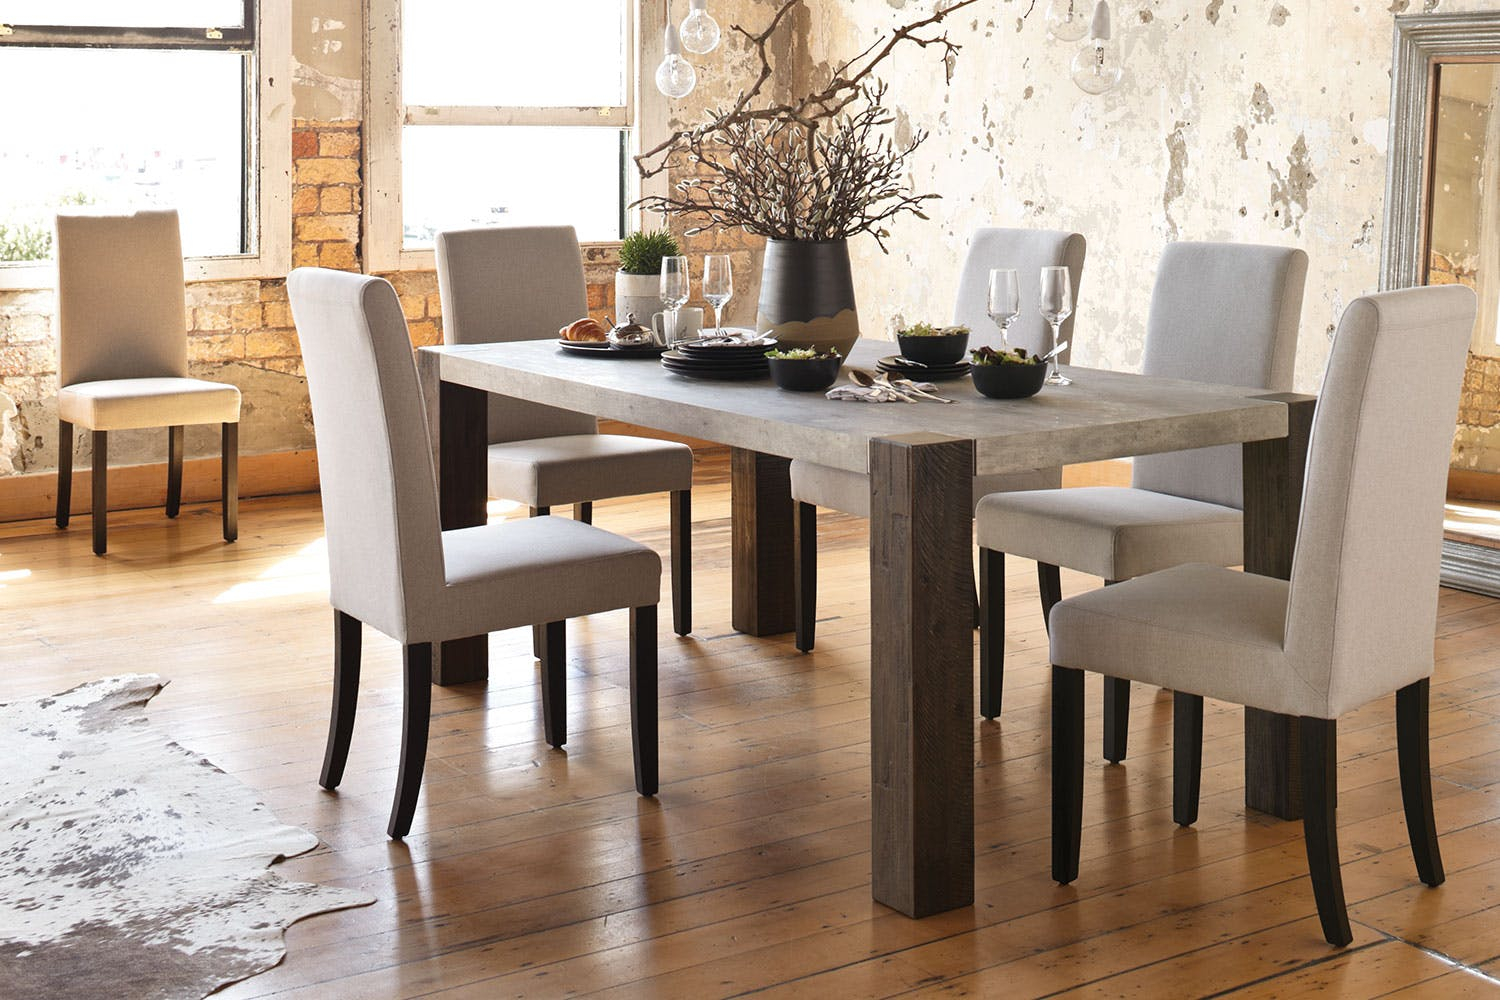 Faro dining table by la z boy harvey norman new zealand for La z boy dining room chairs